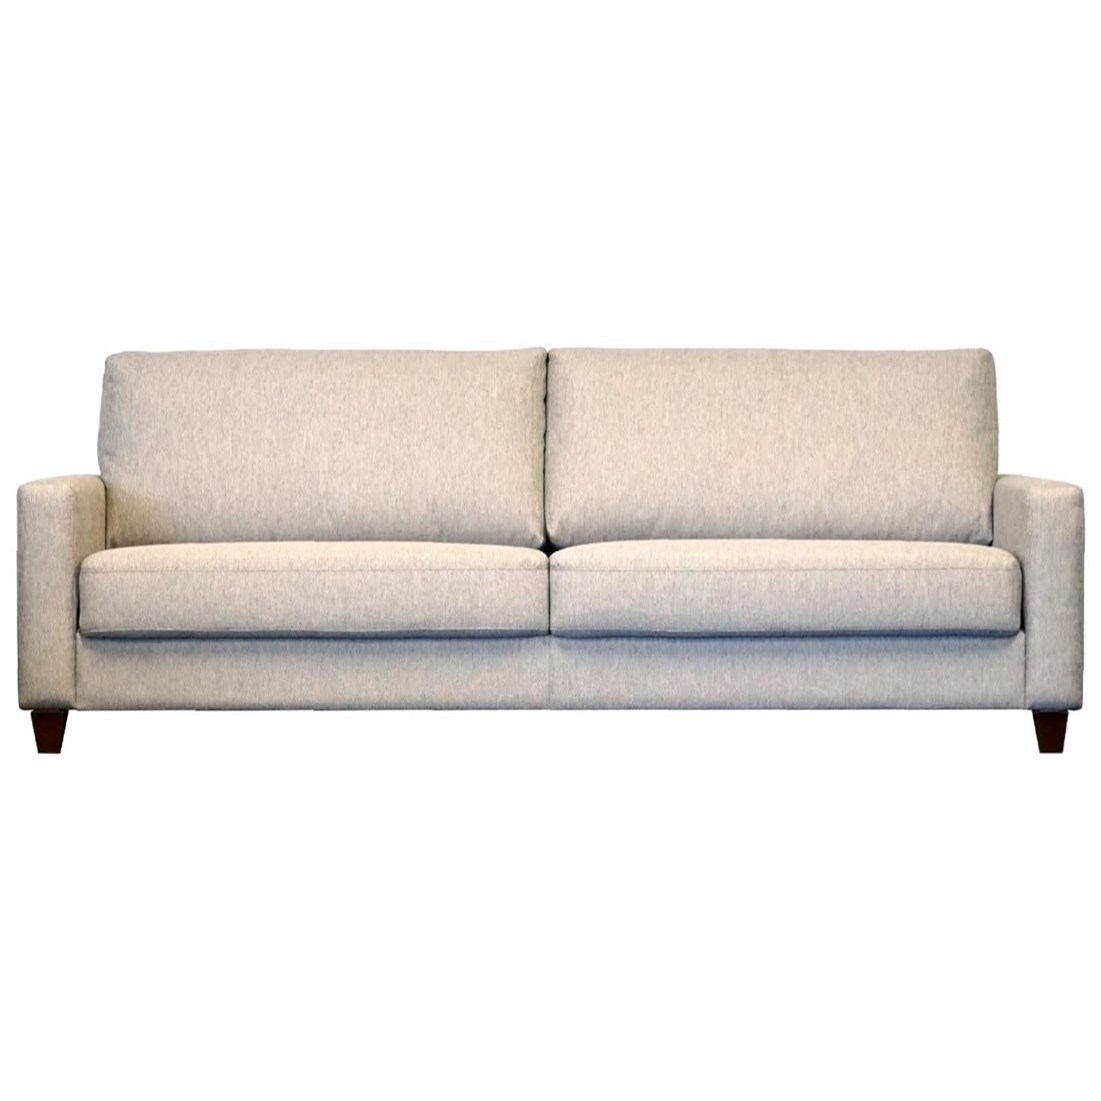 Nico King Size Sofa Sleeper by Luonto at Baer's Furniture